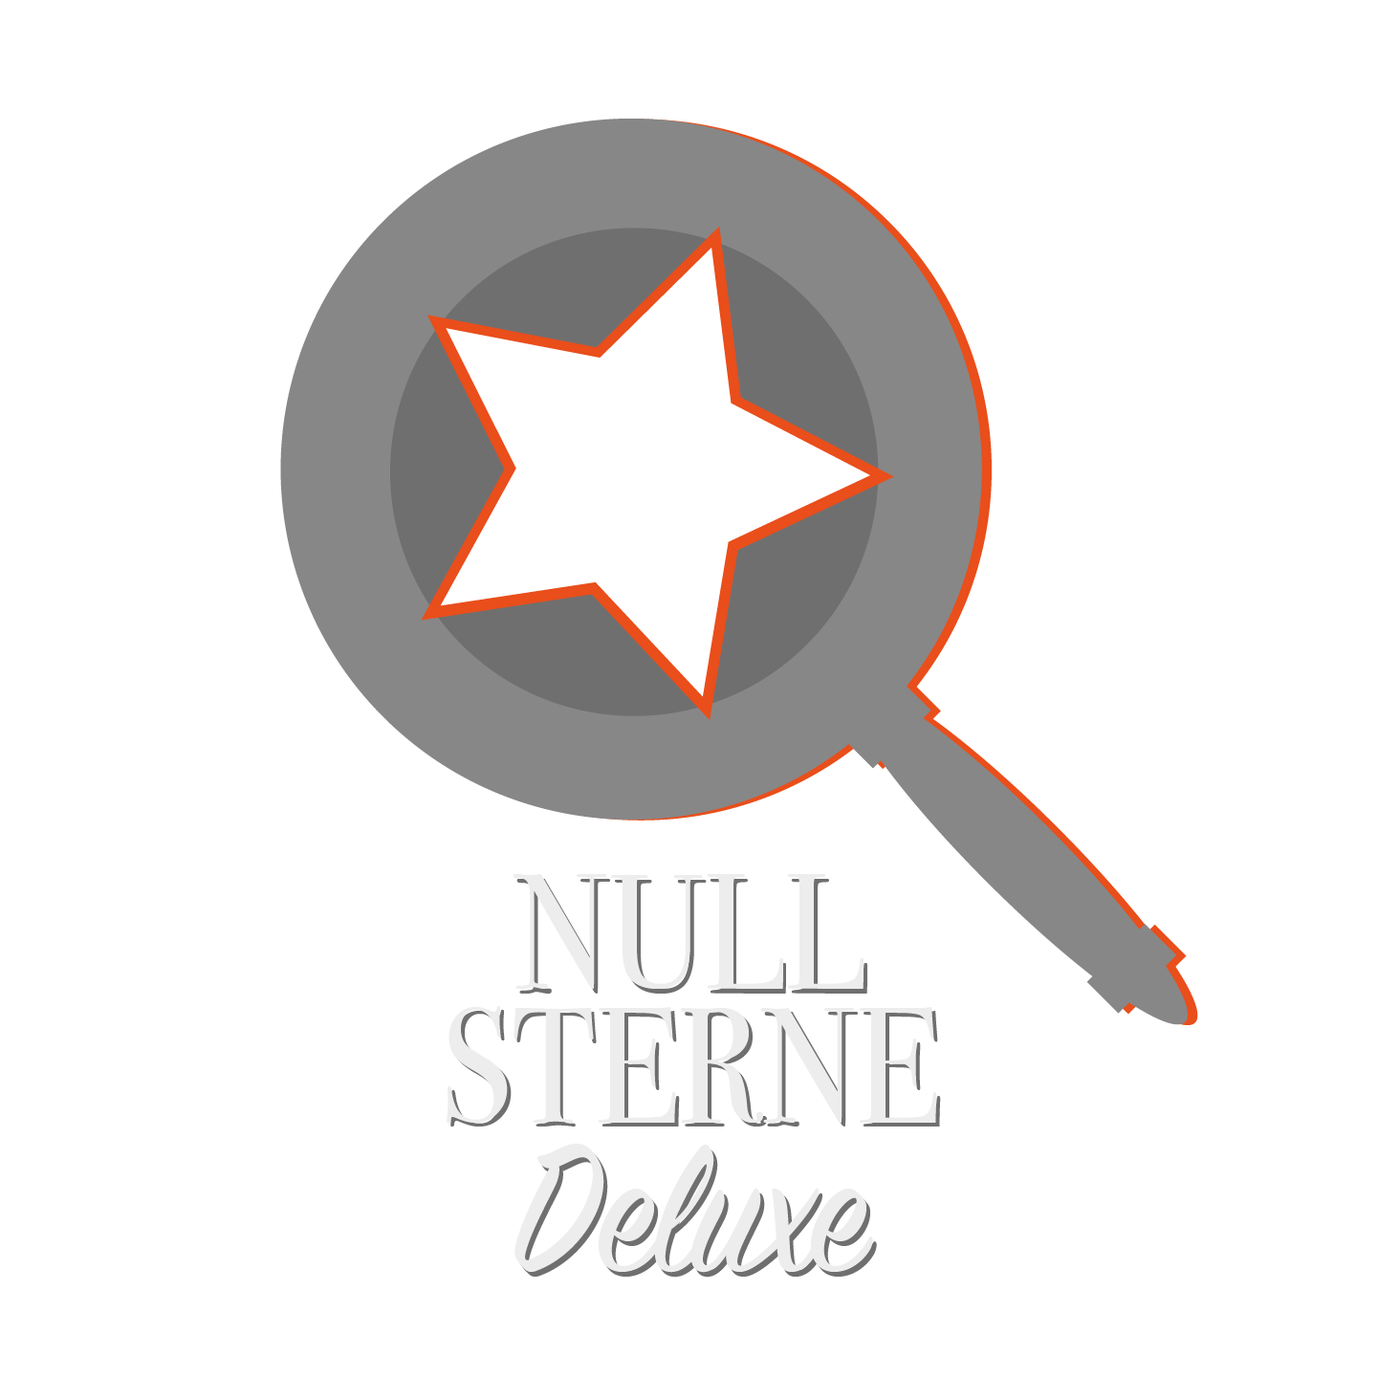 Null Sterne Deluxe